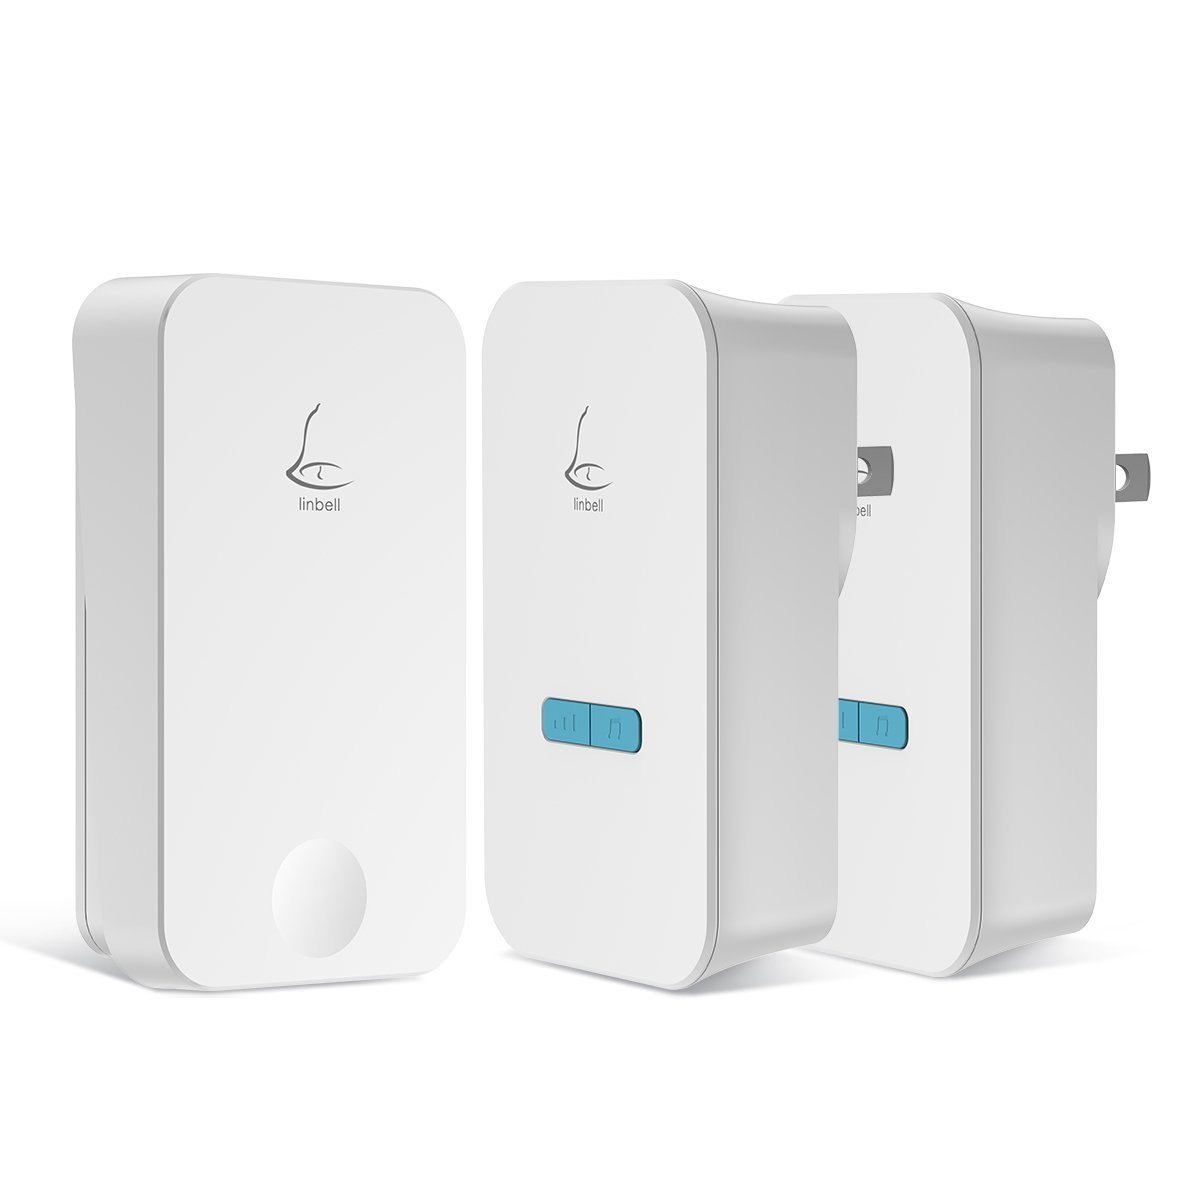 Self Powered Wireless Doorbell kit,linbell G4 1 set Push Button& 2 Plug Receiver with 36 Chimes, 5 Volume Levels and LED Indicator,No Batteries Required for push Button and Receiver